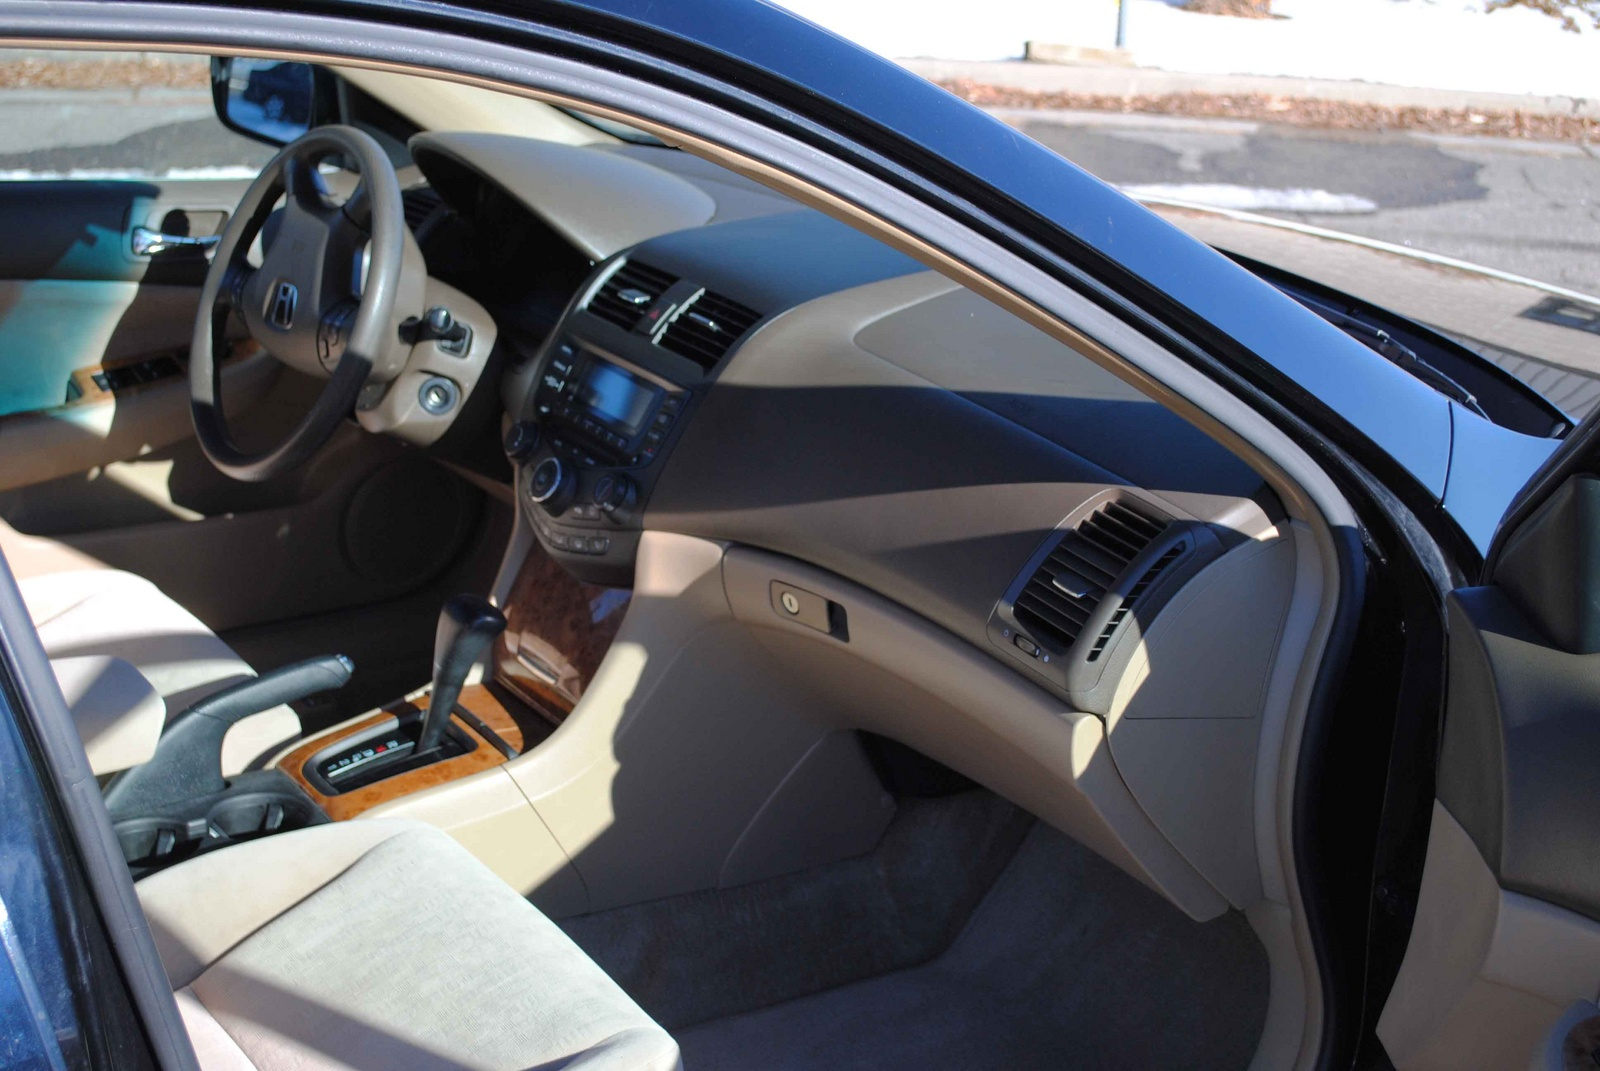 Car interior material - So Before Purchasing One I Want To Ask 7th Gen Owners About What They Think Of The Interior Quality How Does The Interior Compare With The 6th 8th